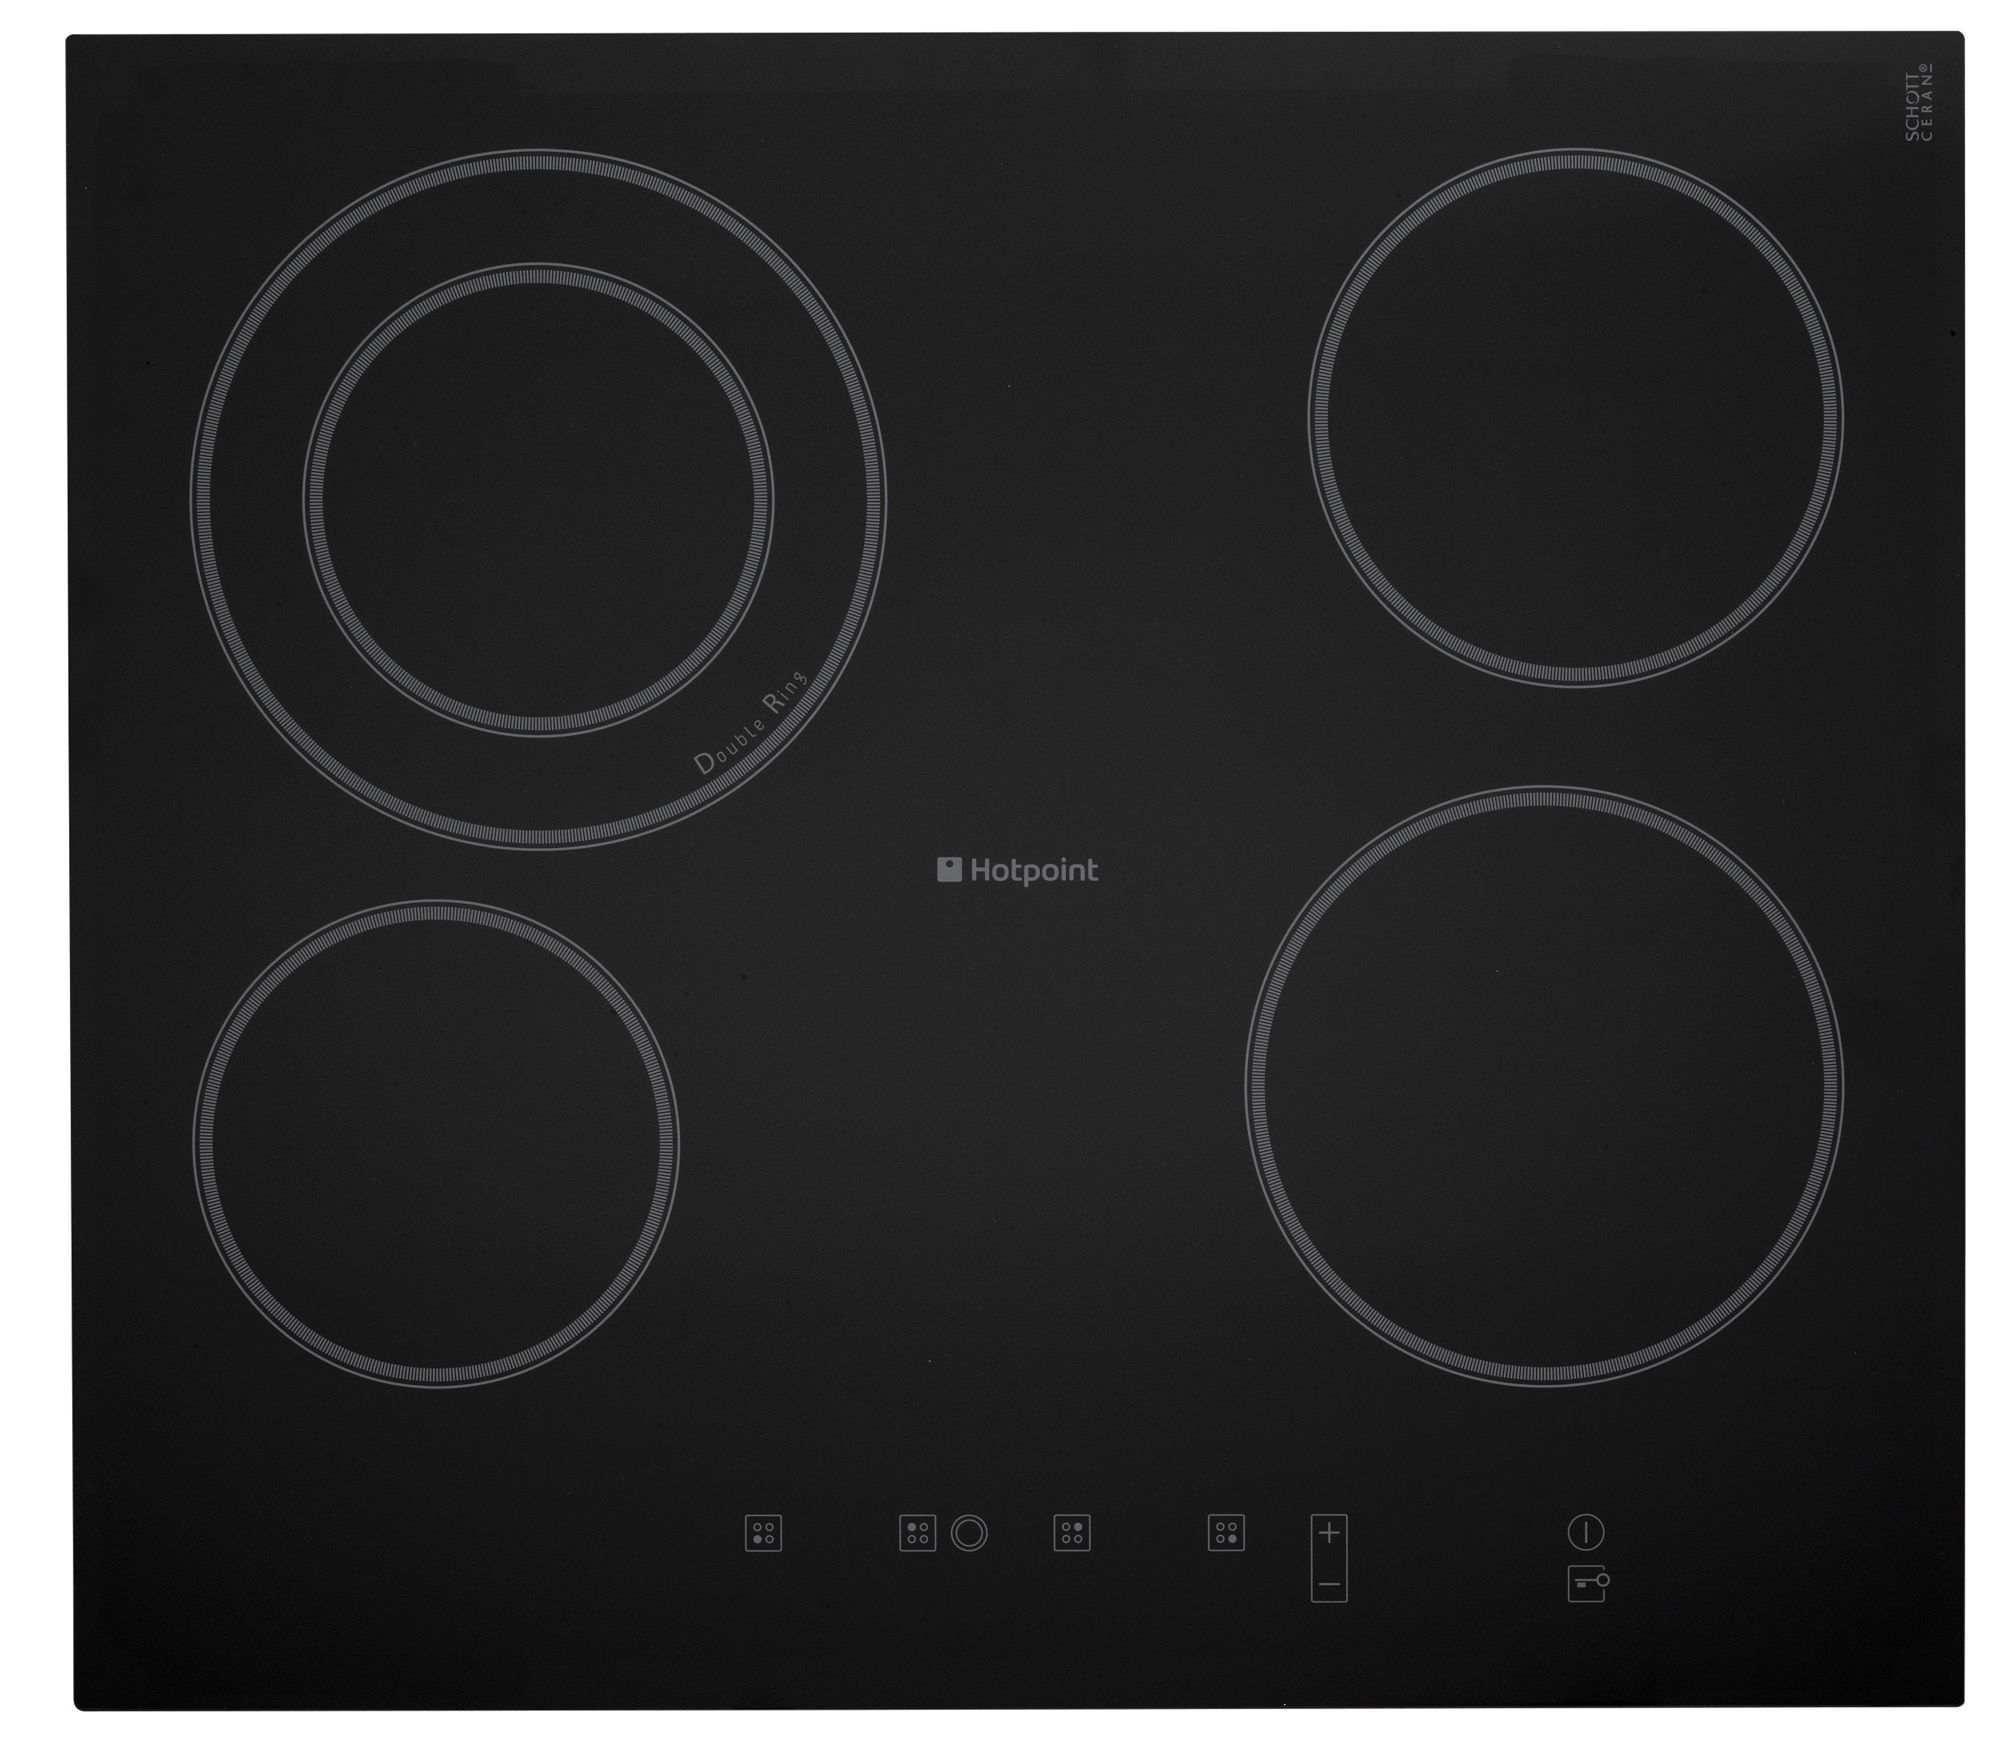 Hotpoint Cra641dc 4 Burner Black Stainless Steel Electric Ceramic Hob